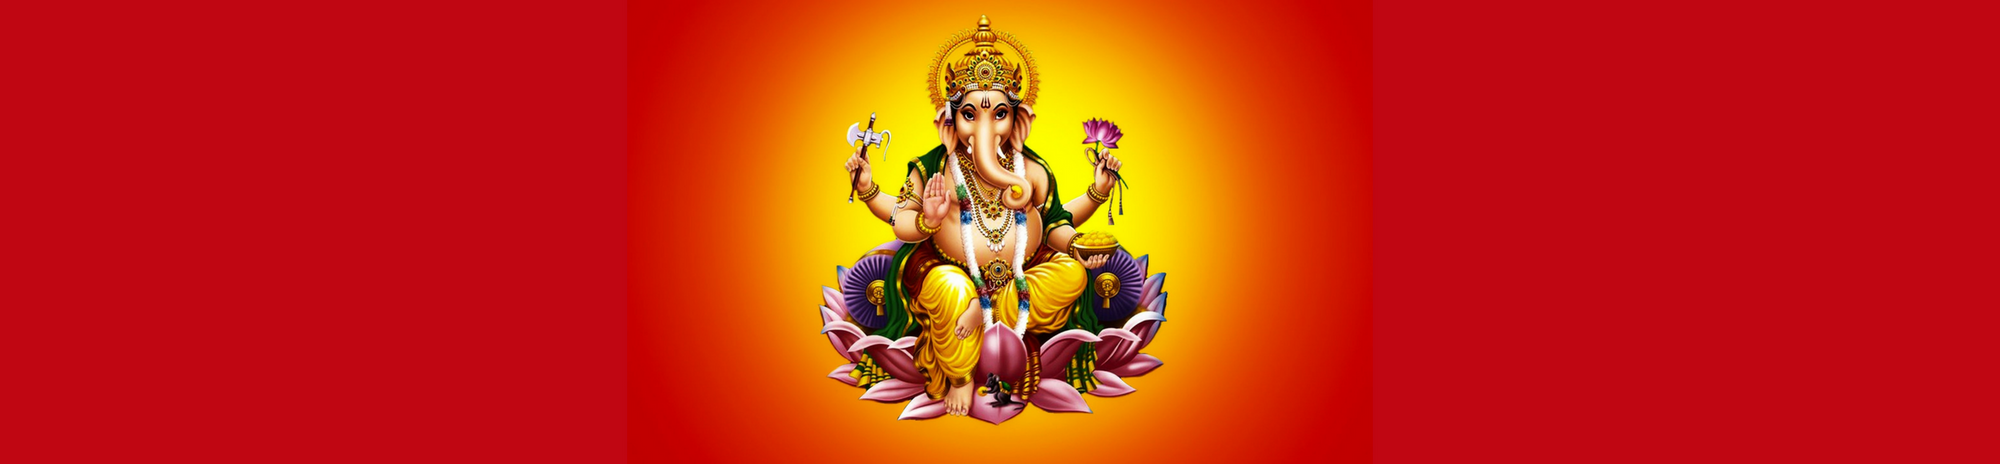 The Hindu God Ganesh - Who is this Elephant Headed Fellow